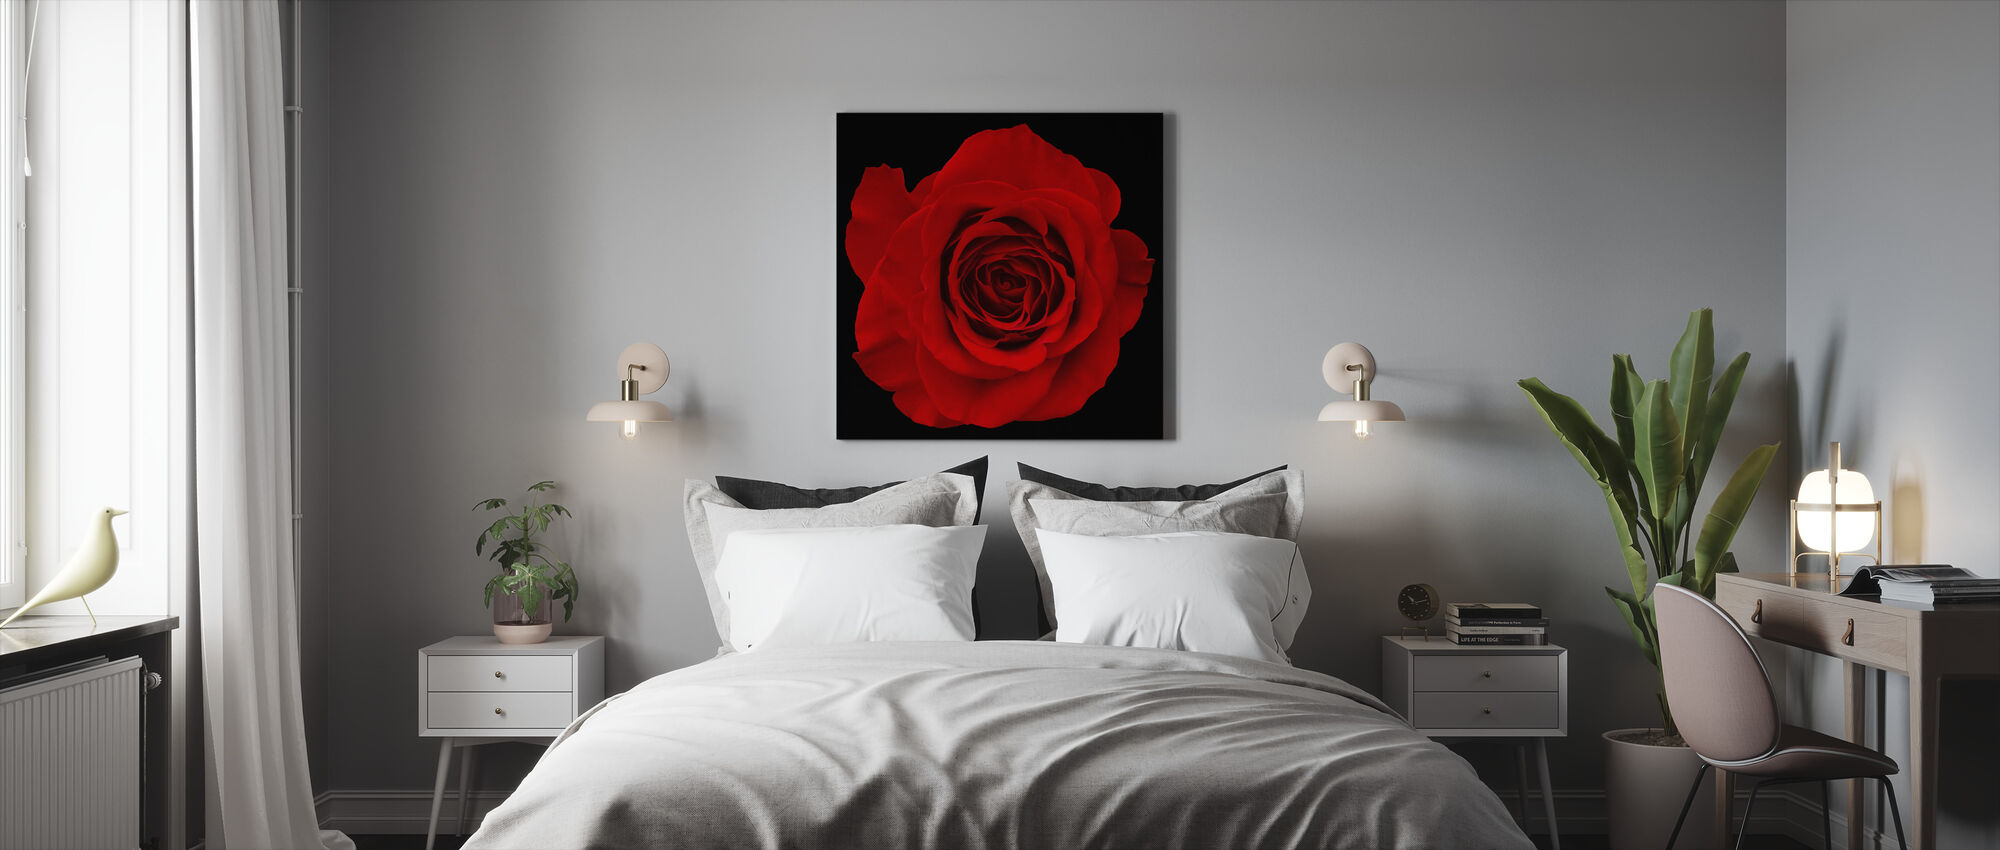 Red Rose Isolated - Canvas print - Bedroom